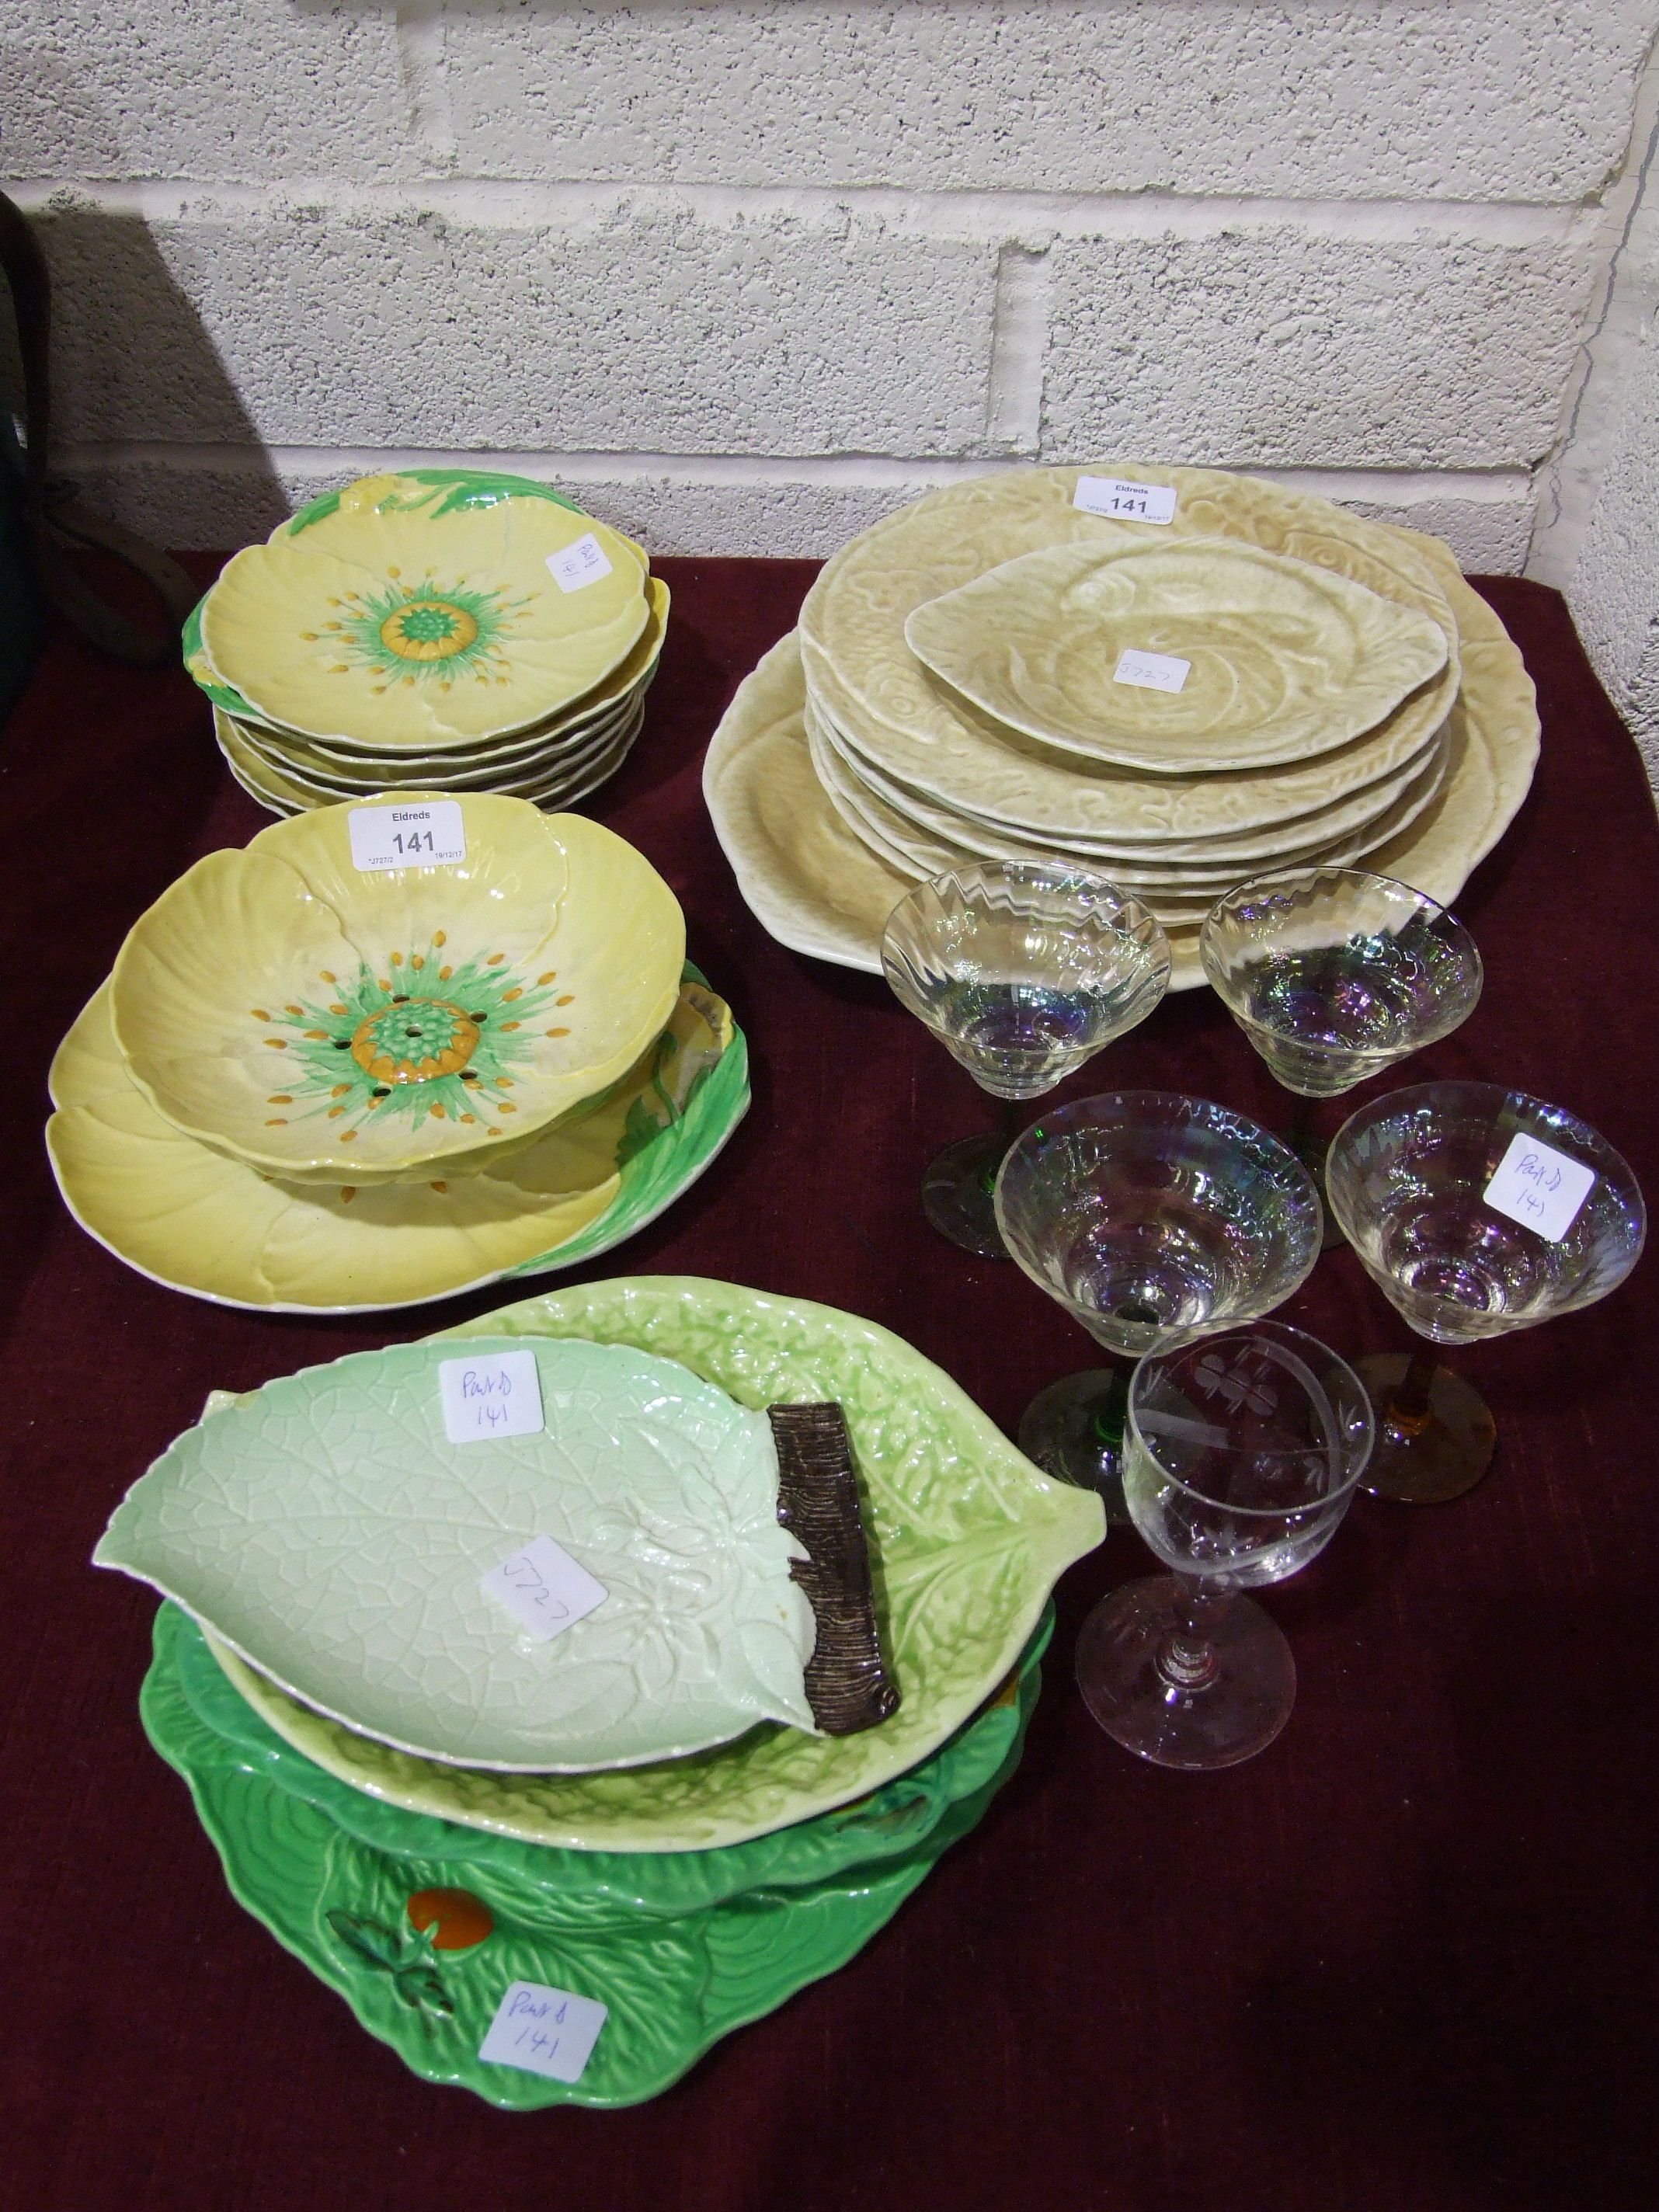 Lot 141 - A Carlton Ware floral dessert service, draining bowl on stand and six dishes, other Carlton Ware,